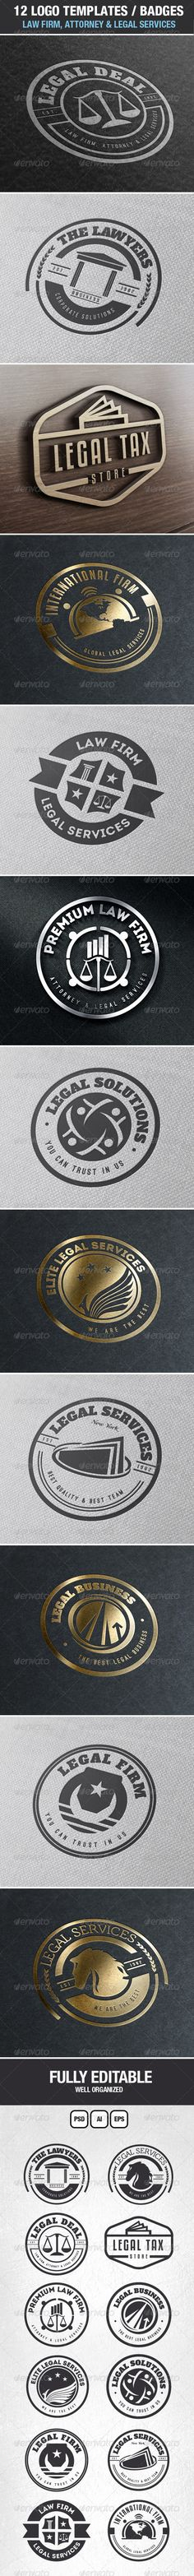 12 Logos & Badges Law Firm & Legal Services   Buy and Download: http://graphicriver.net/item/12-logos-badges-law-firm-legal-services/7048297?WT.ac=category_thumb&WT.z_author=designdistrictmx&ref=ksioks